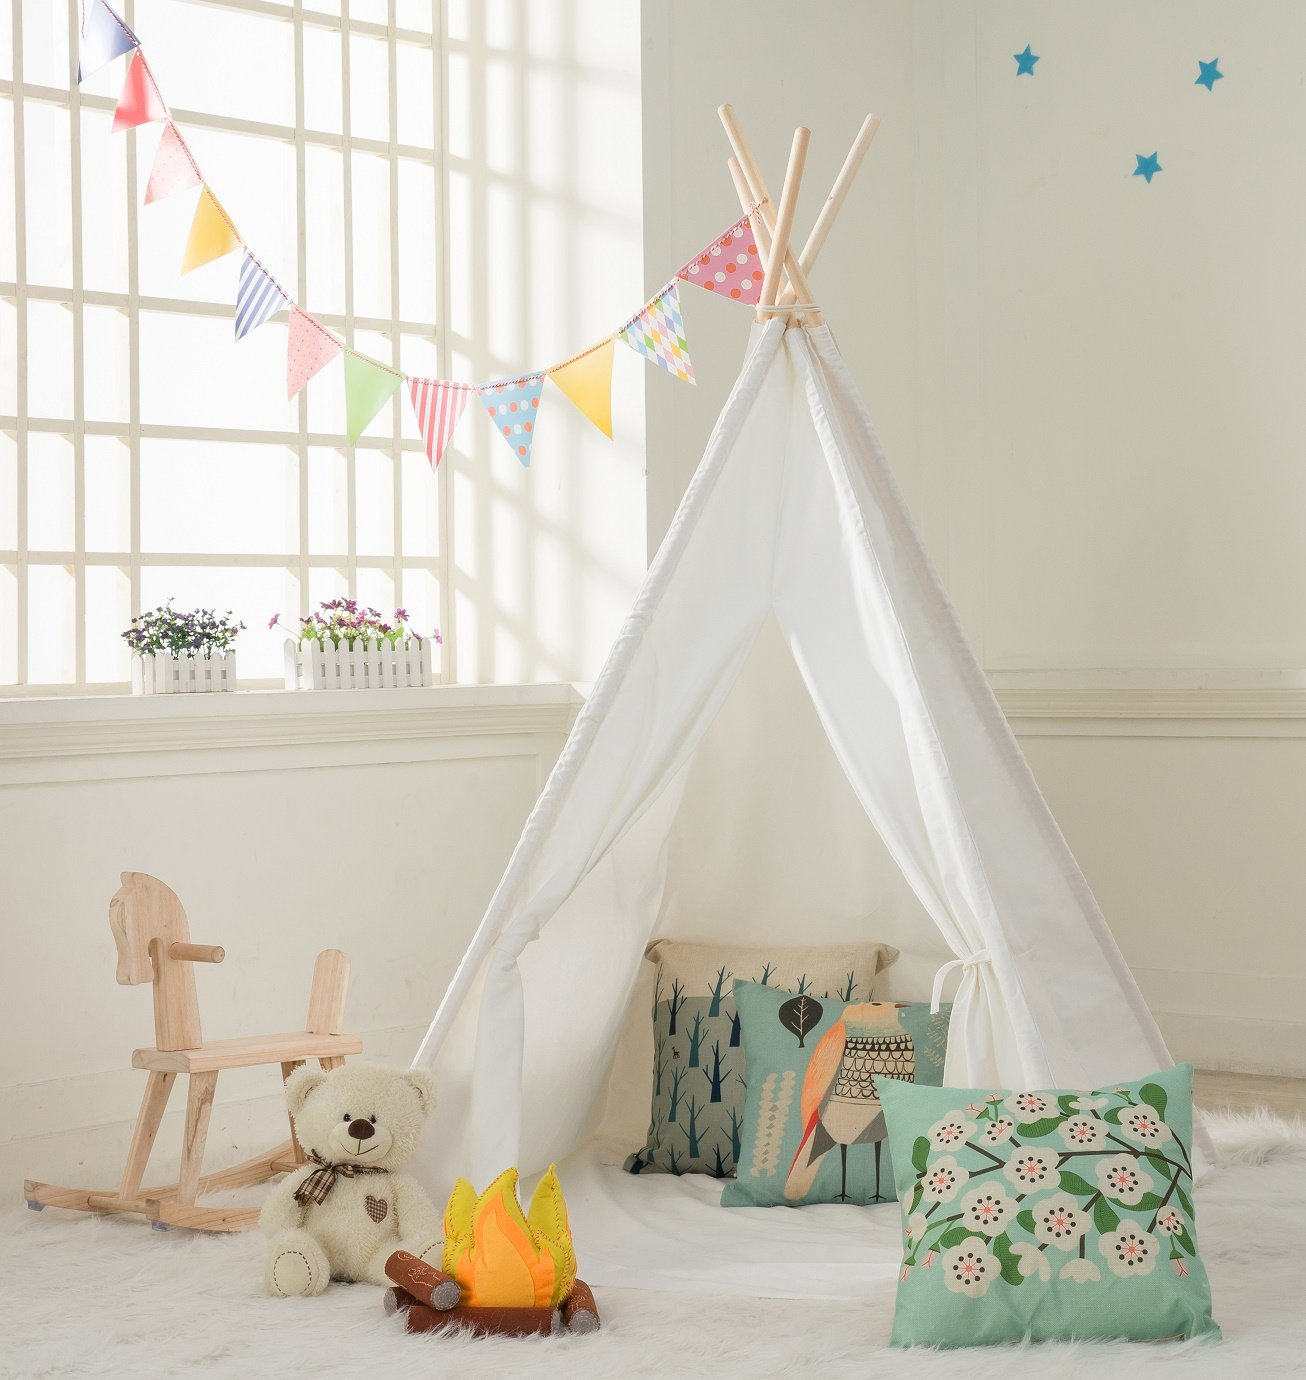 DalosDream Indoor Outdoor Classic White Cotton Canvas Play Teepee Tent for Toddler Kids with Mat Floor and Carry bag by DalosDream (Image #1)